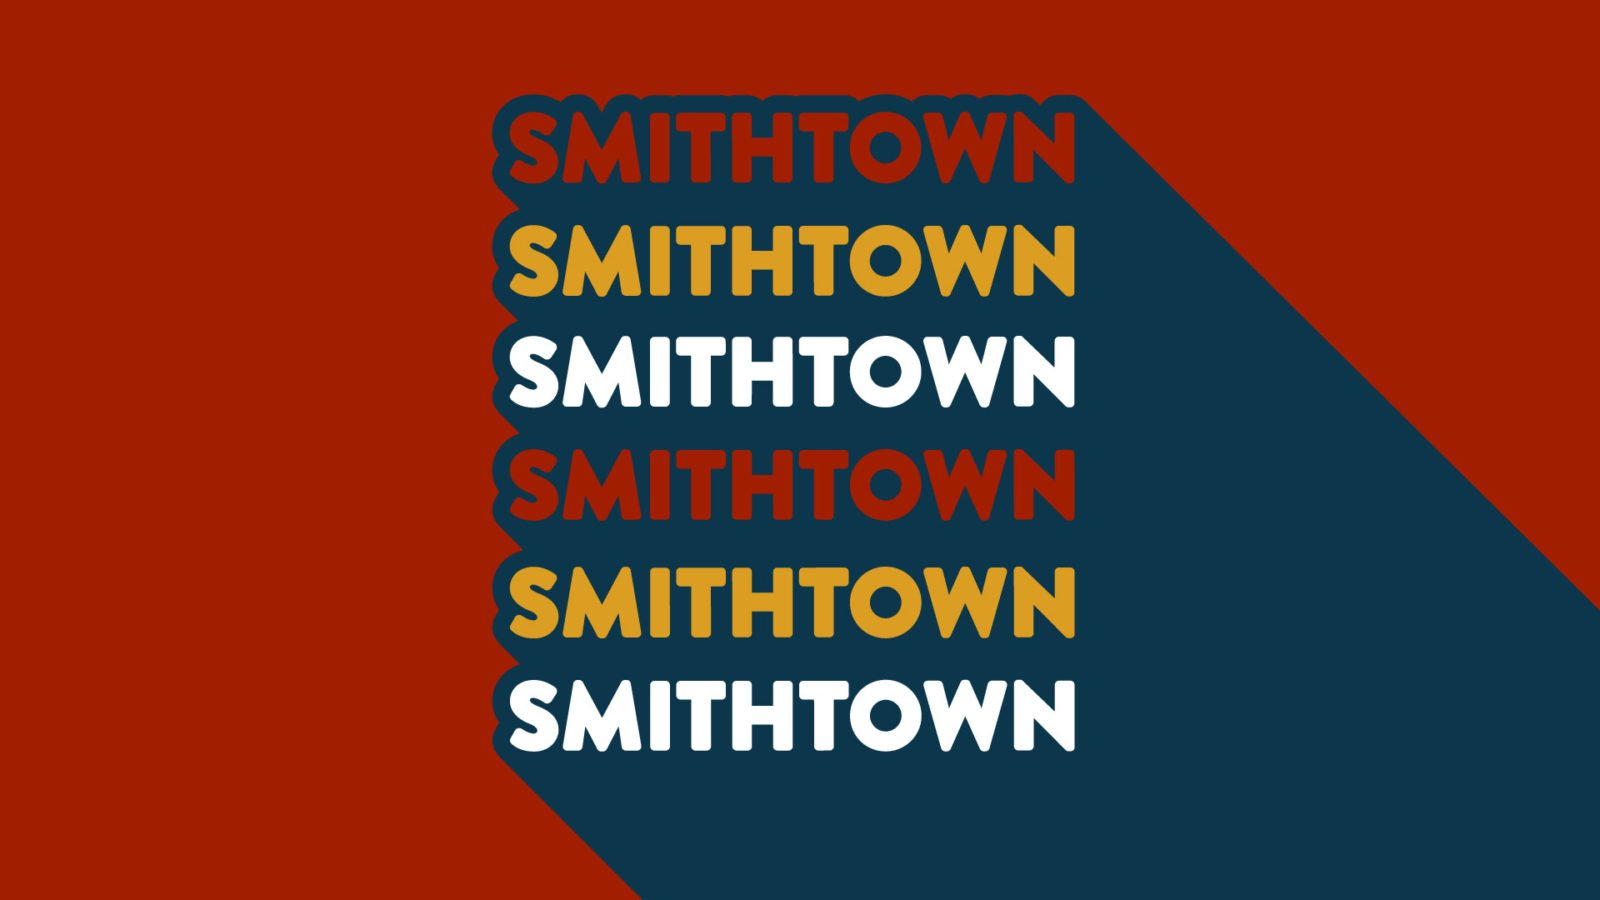 A Brand Identity for Smithtown Seafood by Bullhorn Creative